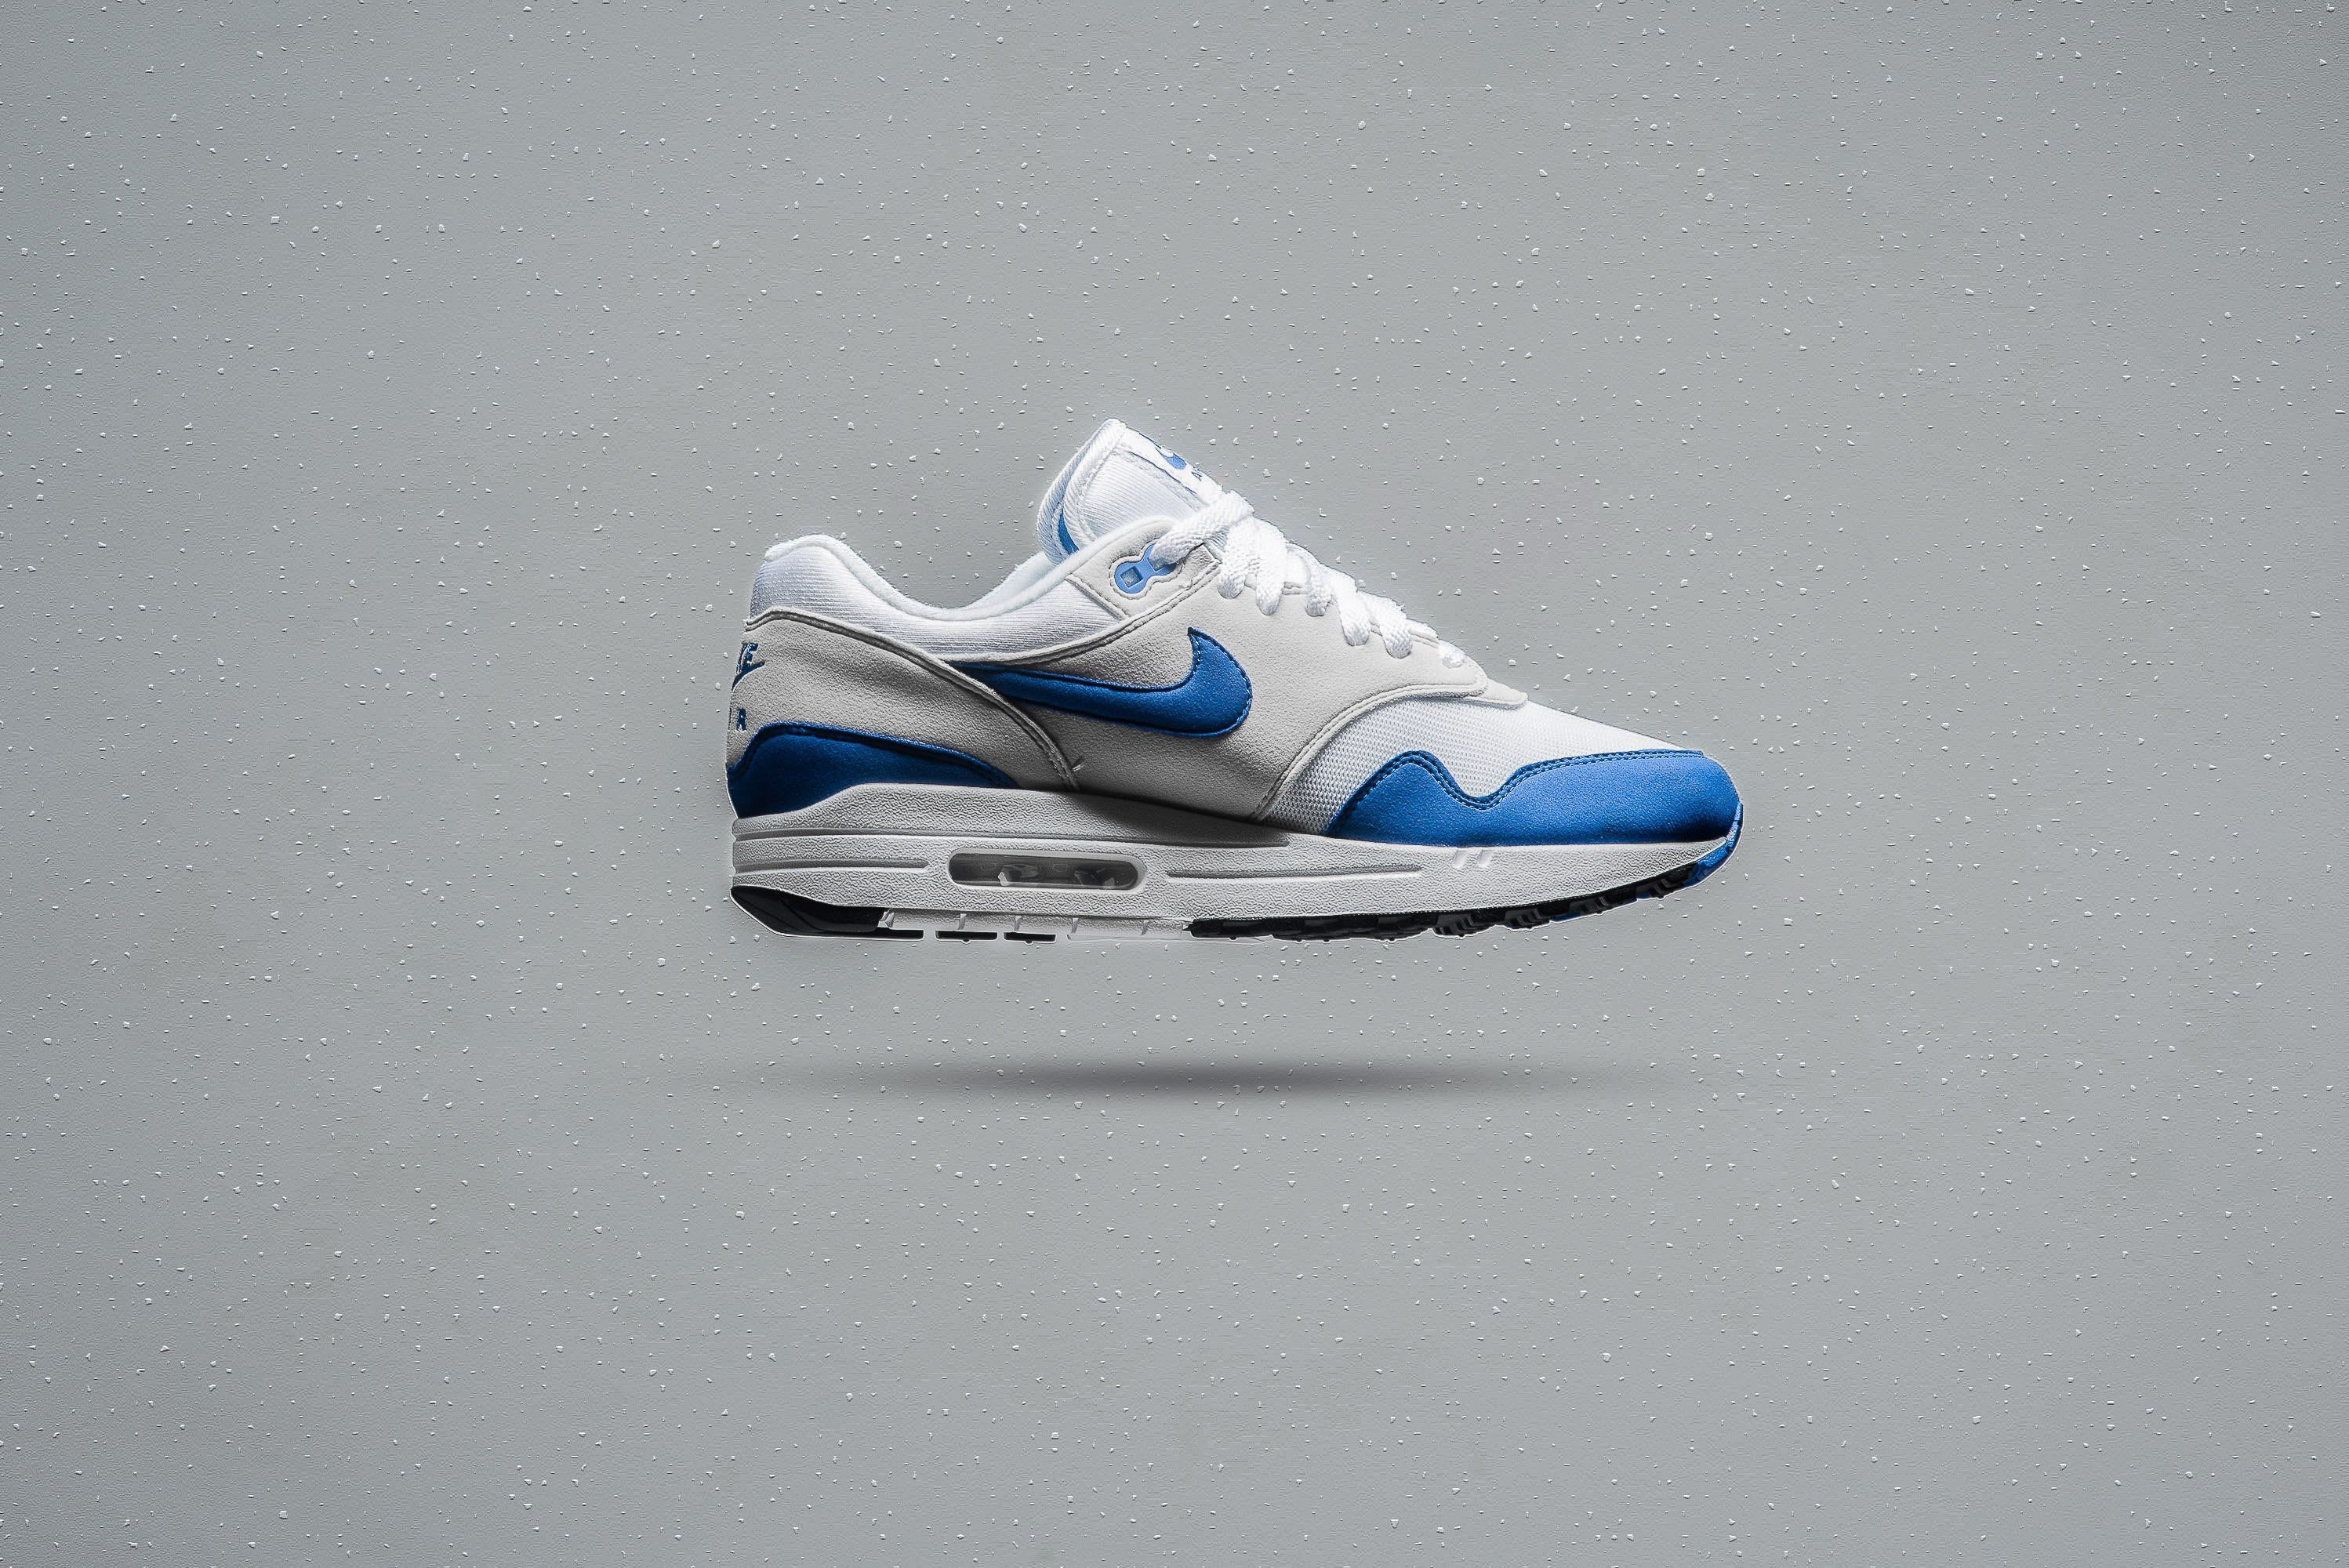 half off bd0c9 5edc5 Nike Air Max 1 Anniversary Color  White Game Royal-Neutral Grey Style Code   908375-102. Release Date  10 27 2017. Price   140.00